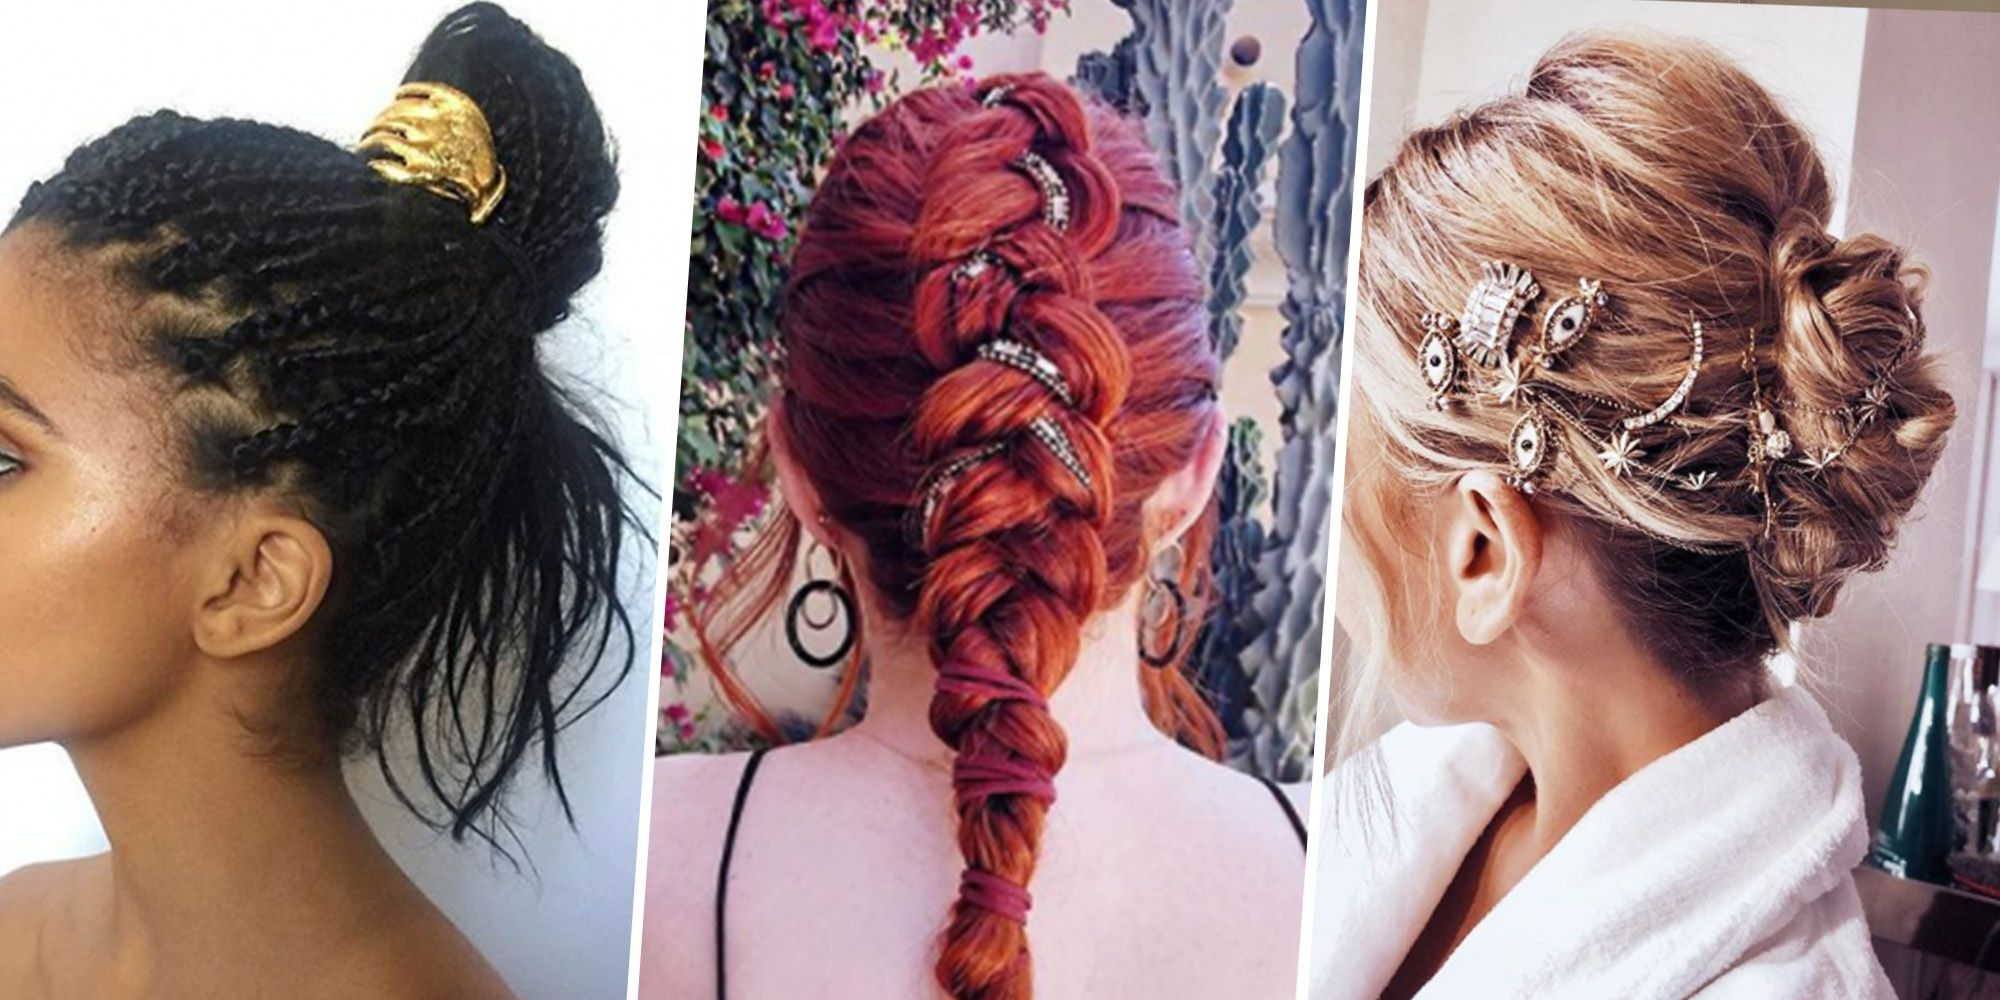 to wear - Hair?hot Braided trend this summer pictures video